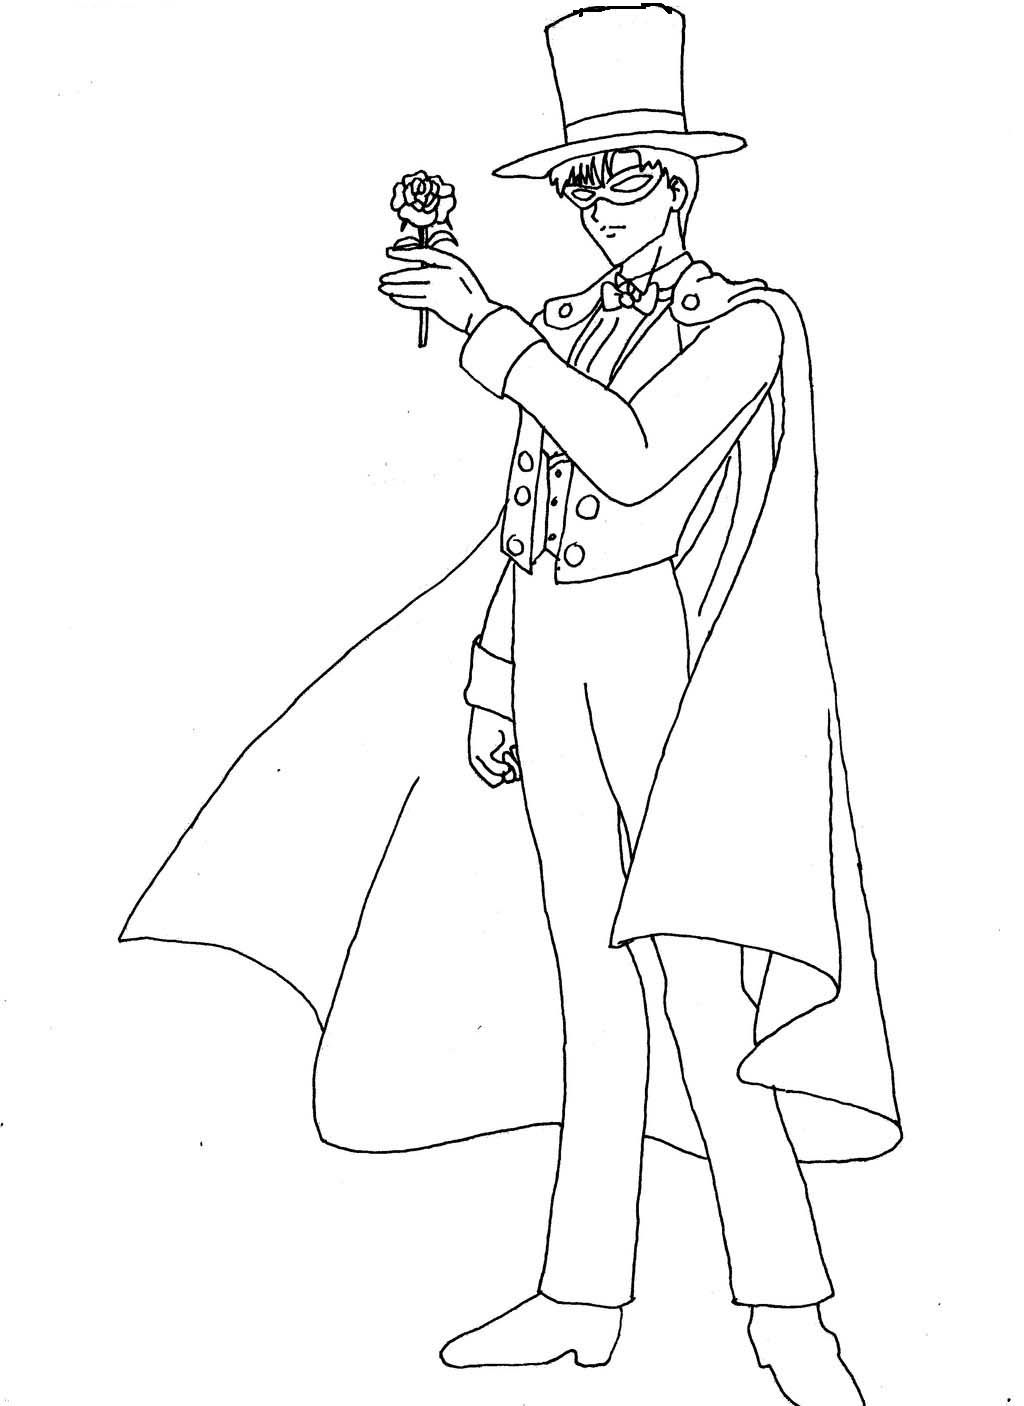 sailor moon tuxedo mask coloring pages | Sailor Moon Tuxedo Mask Carrying A Flower